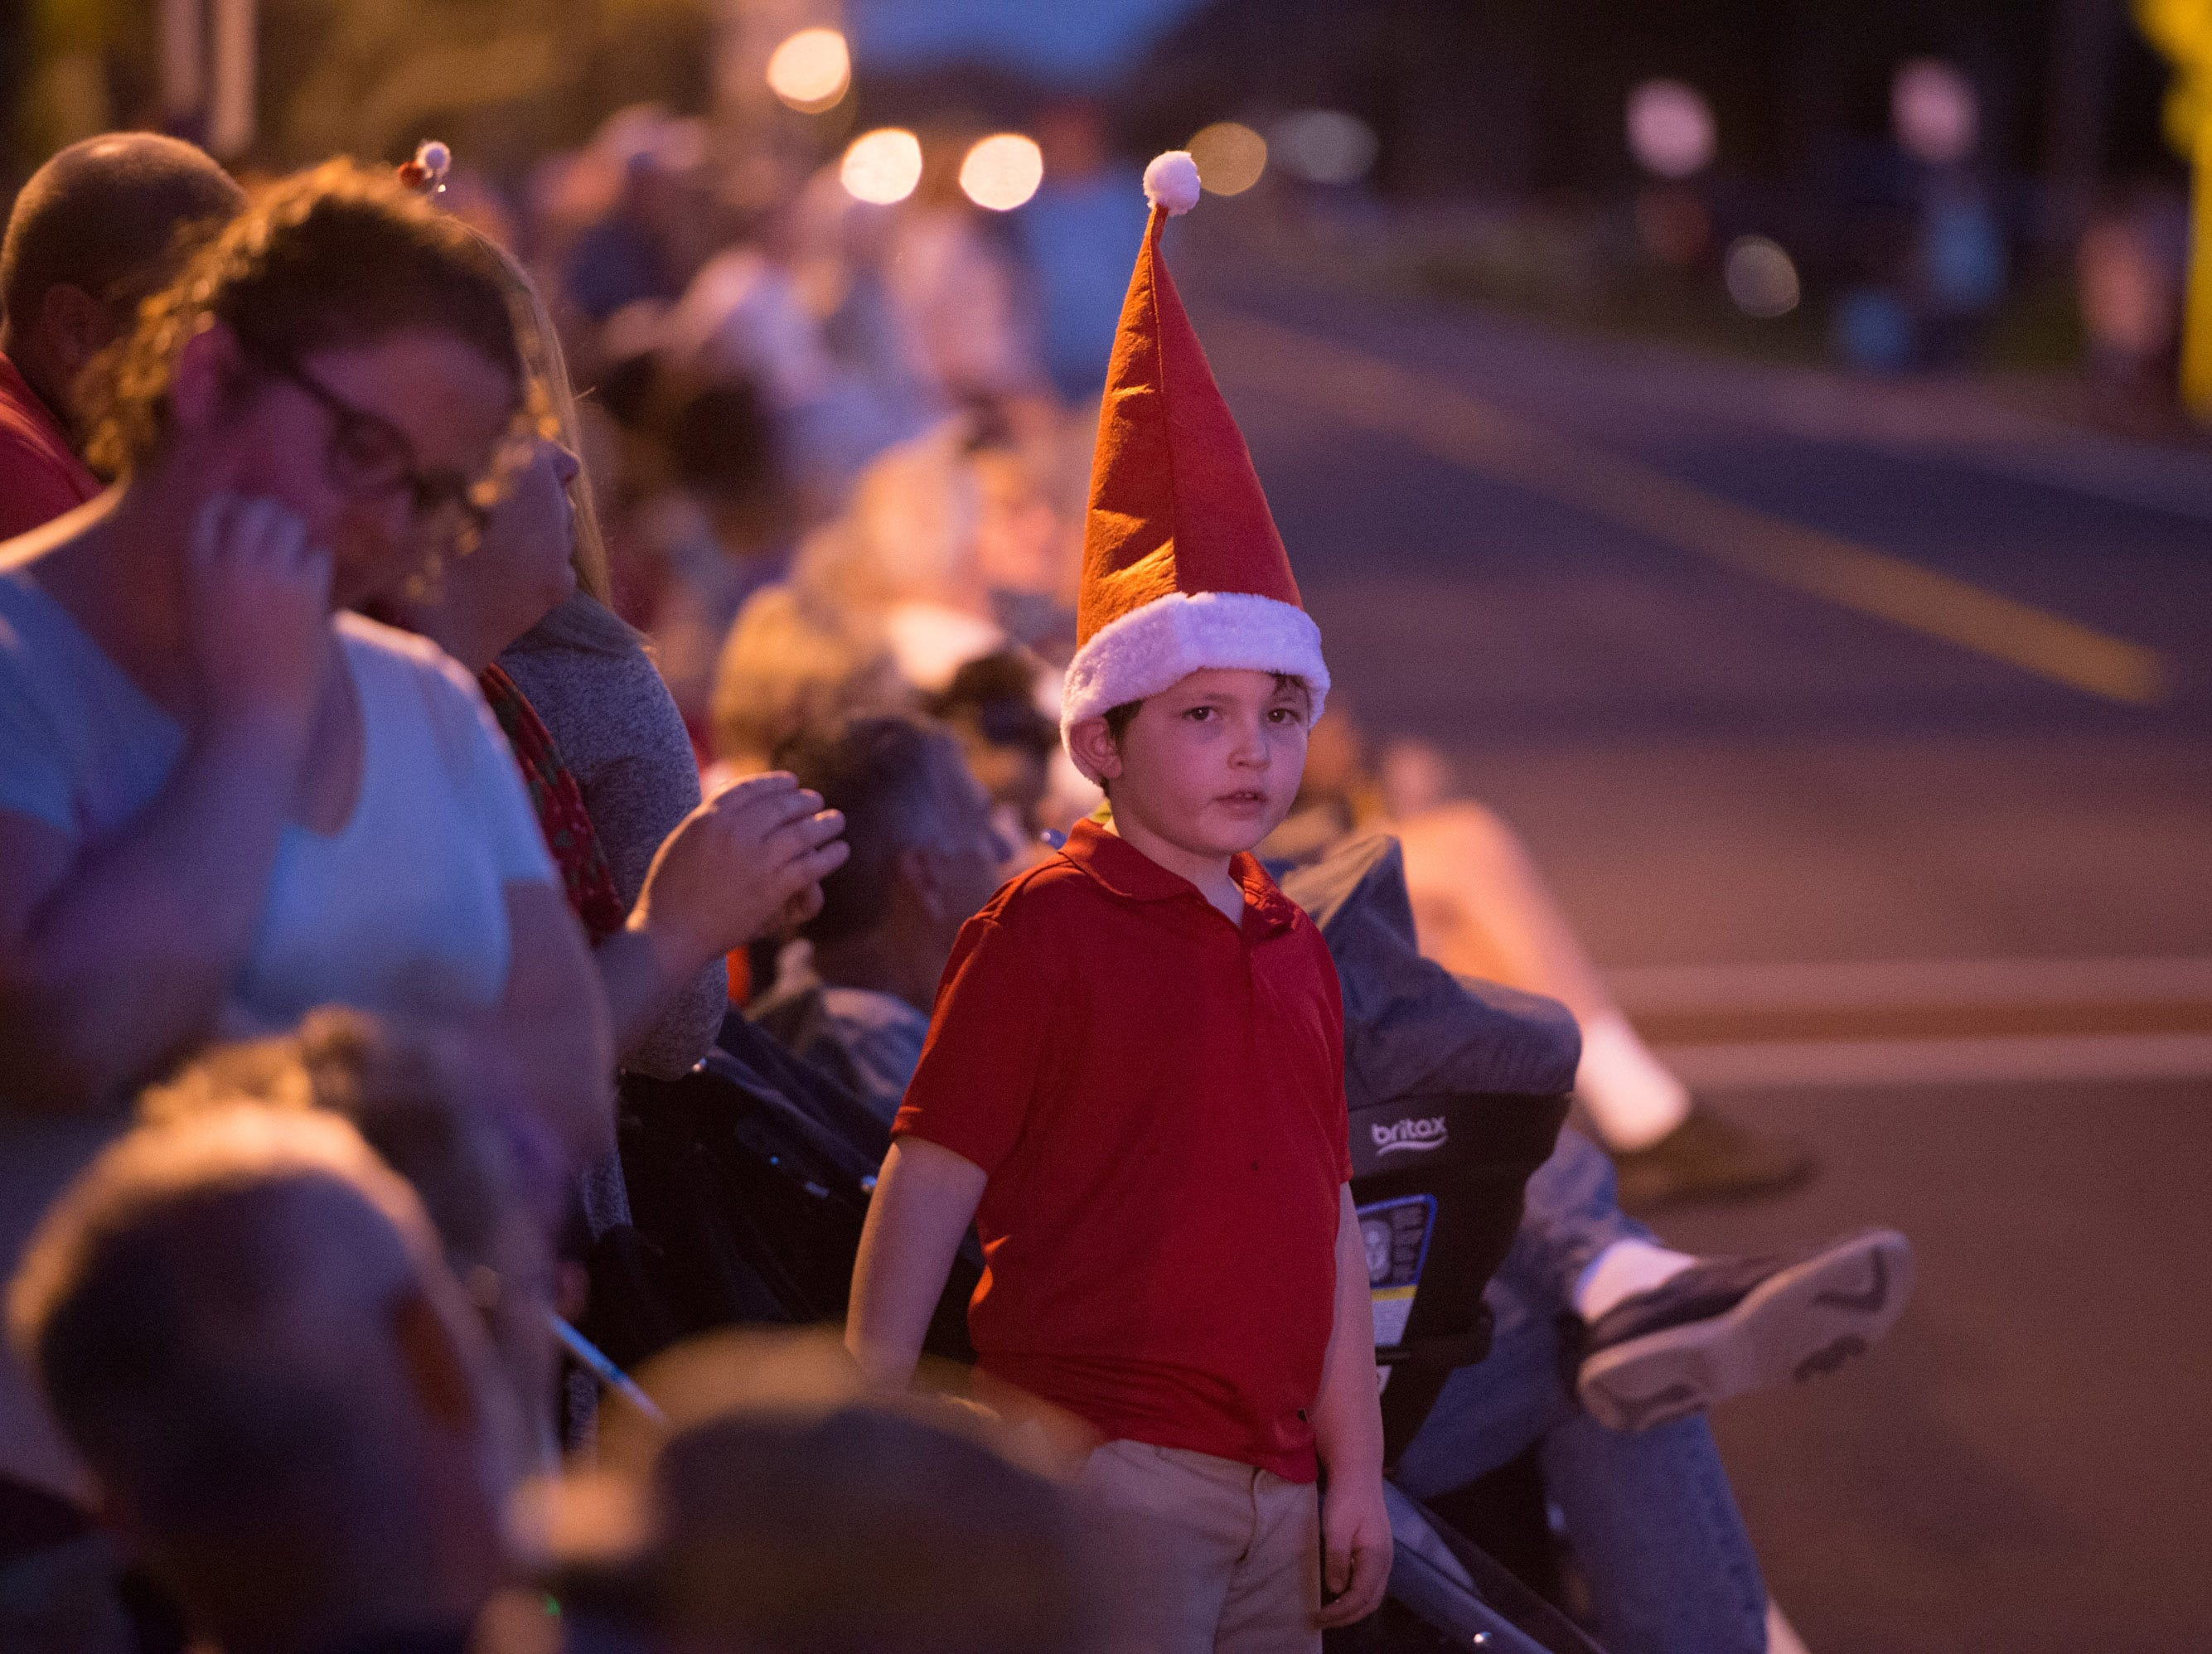 Participants and spectators celebrate the season at the Sebastian Christmas Parade on Saturday, Dec. 1, 2018, in Sebastian.